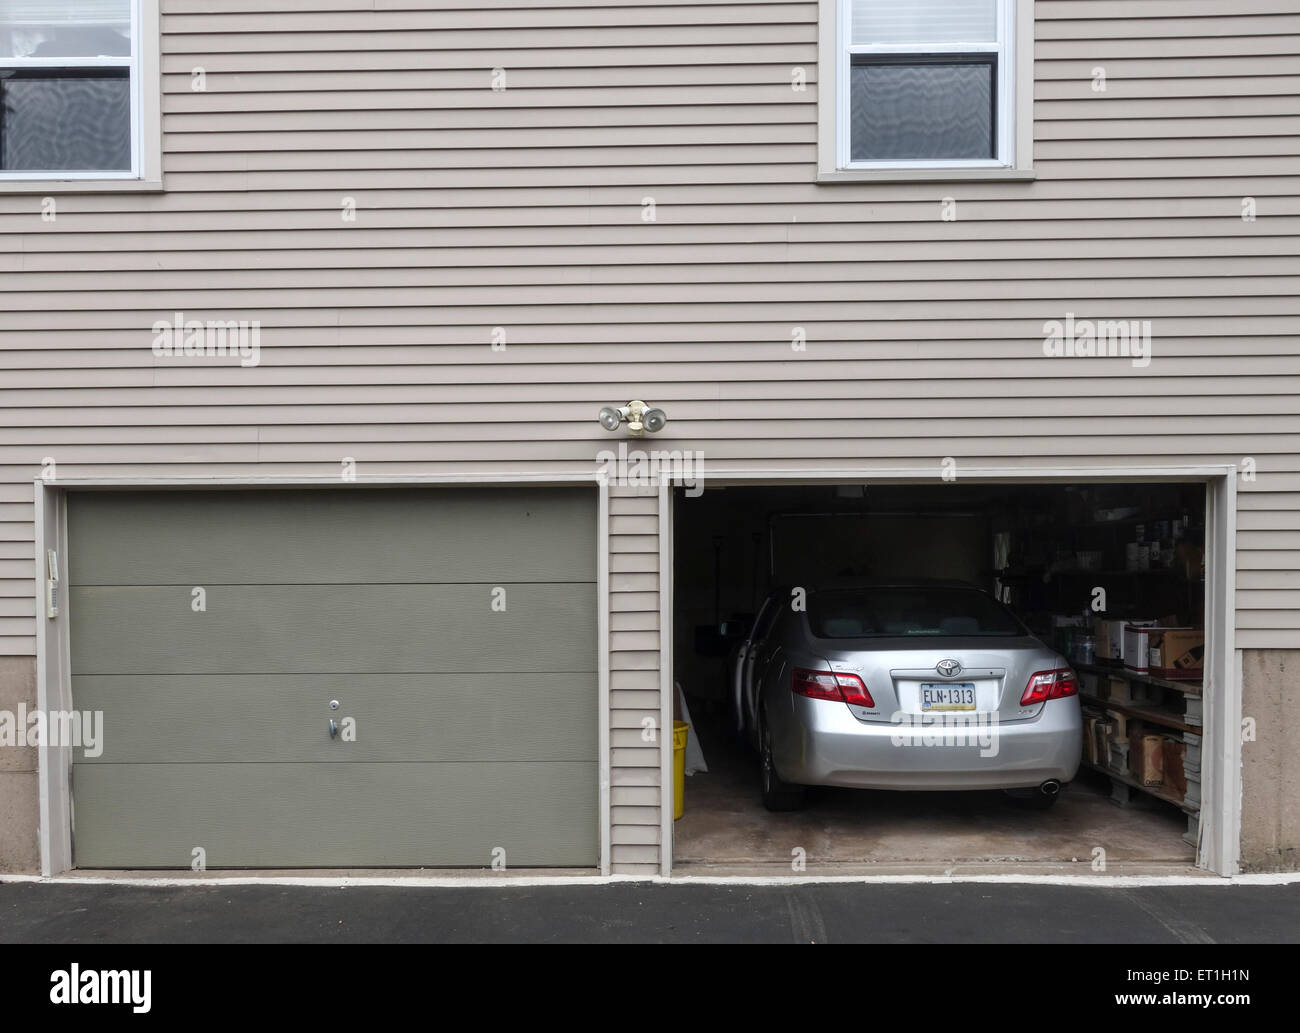 Garage Doors Inside House : Open garage door with car parked inside american style